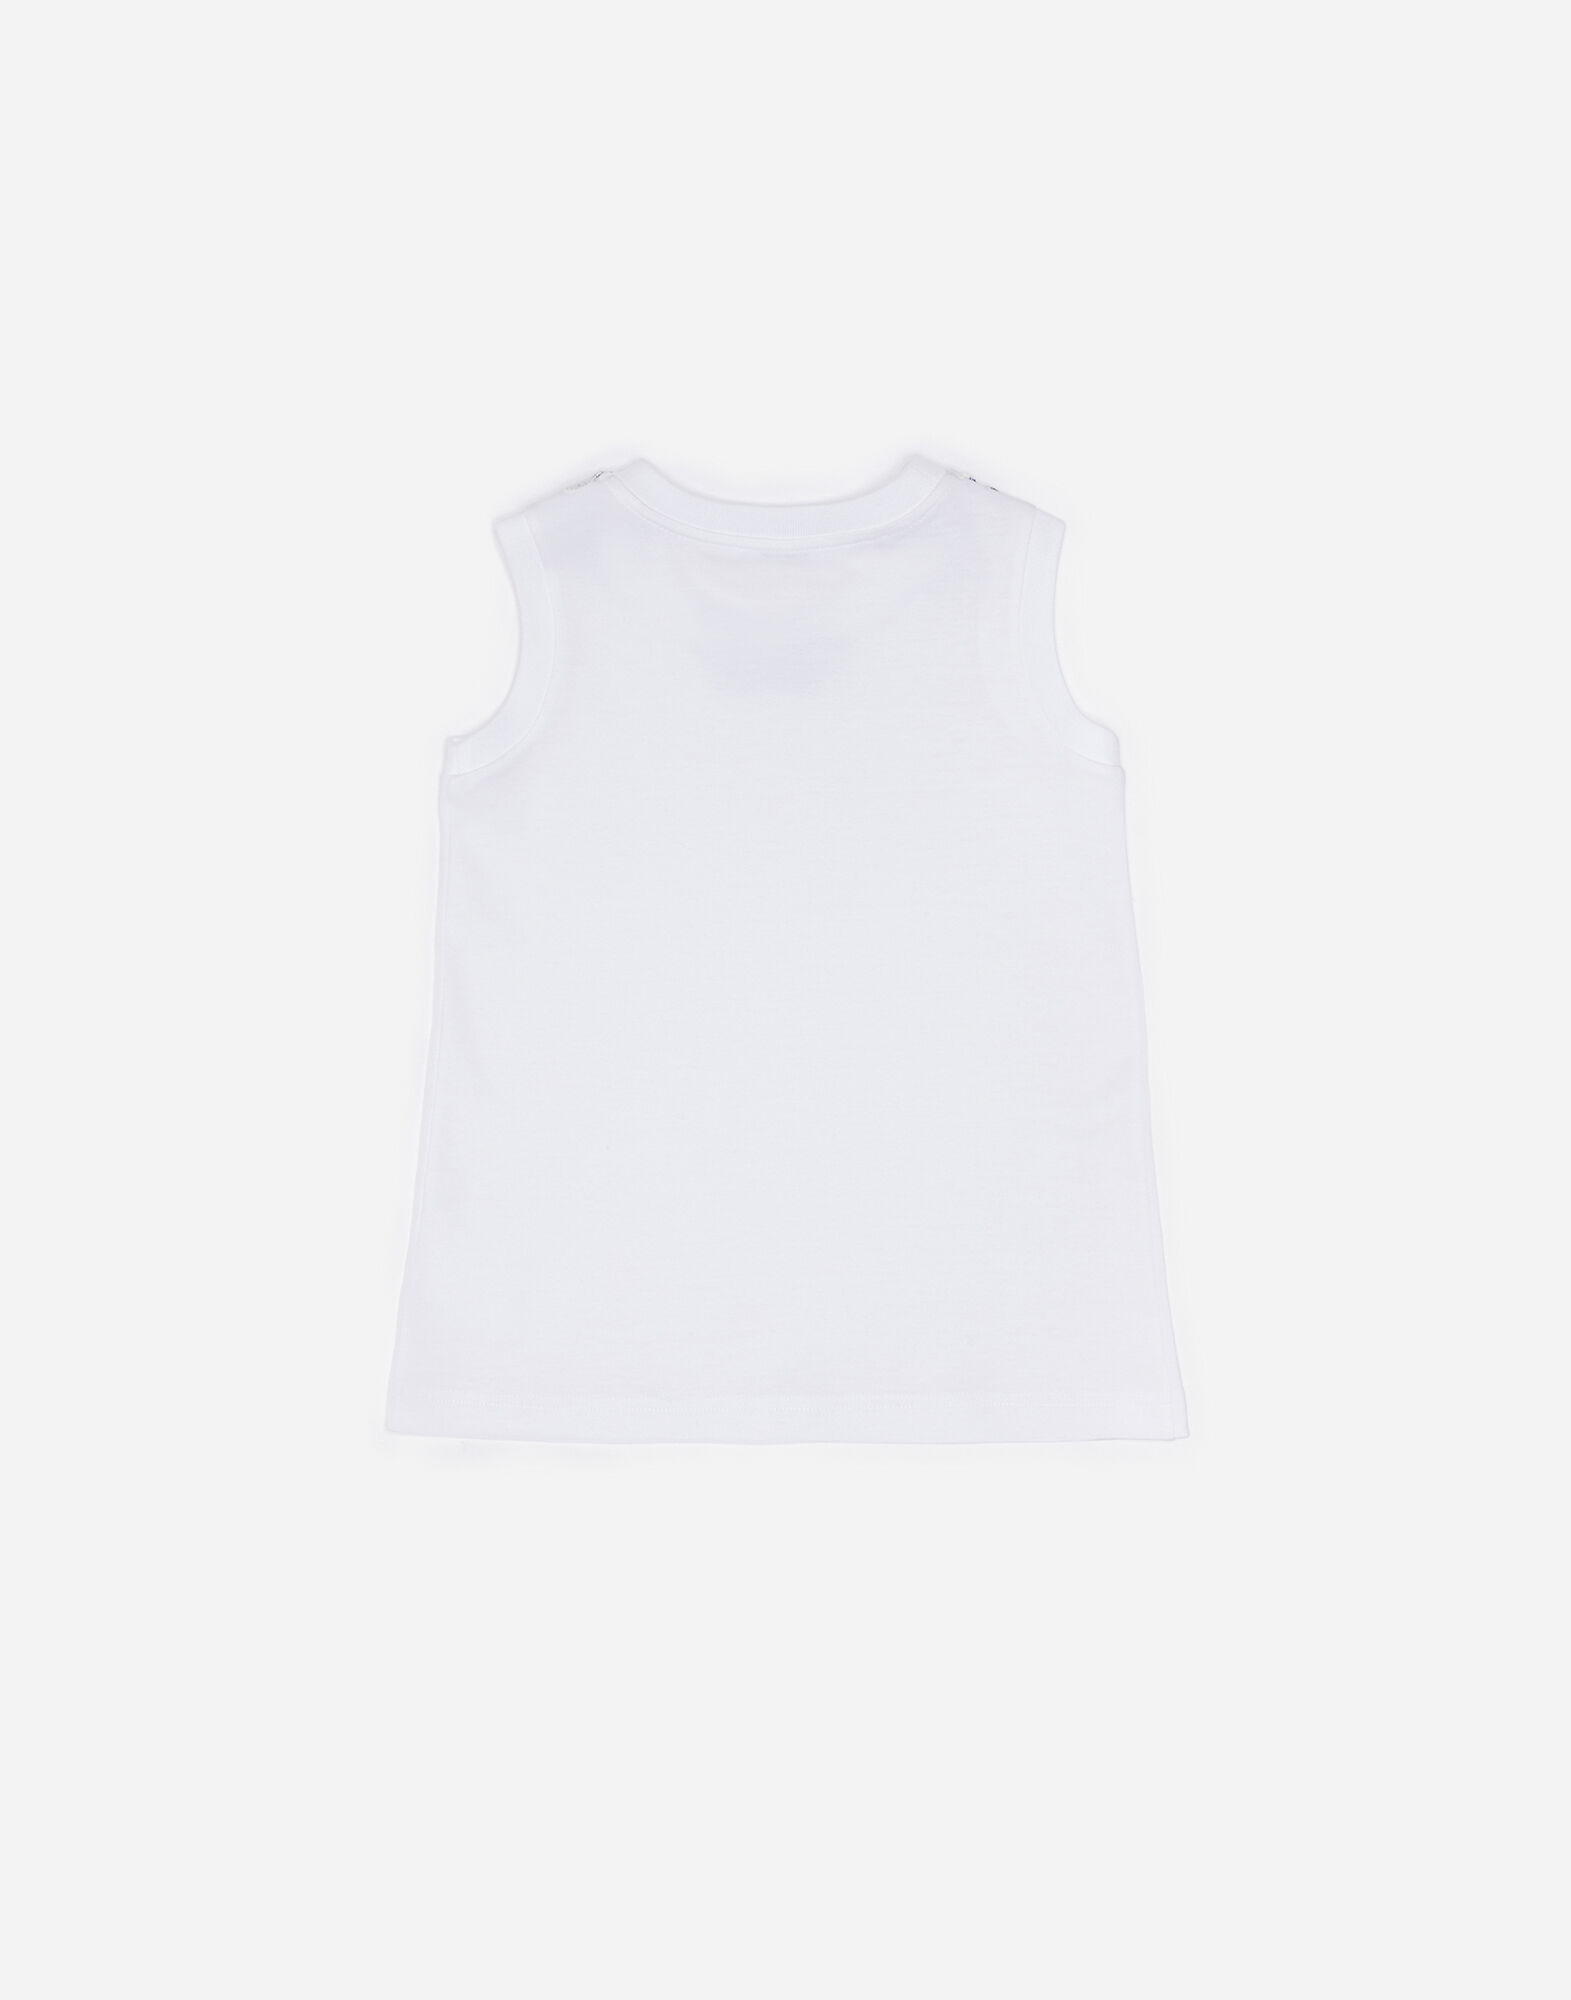 SLEEVELESS COTTON T-SHIRT WITH PATCHES